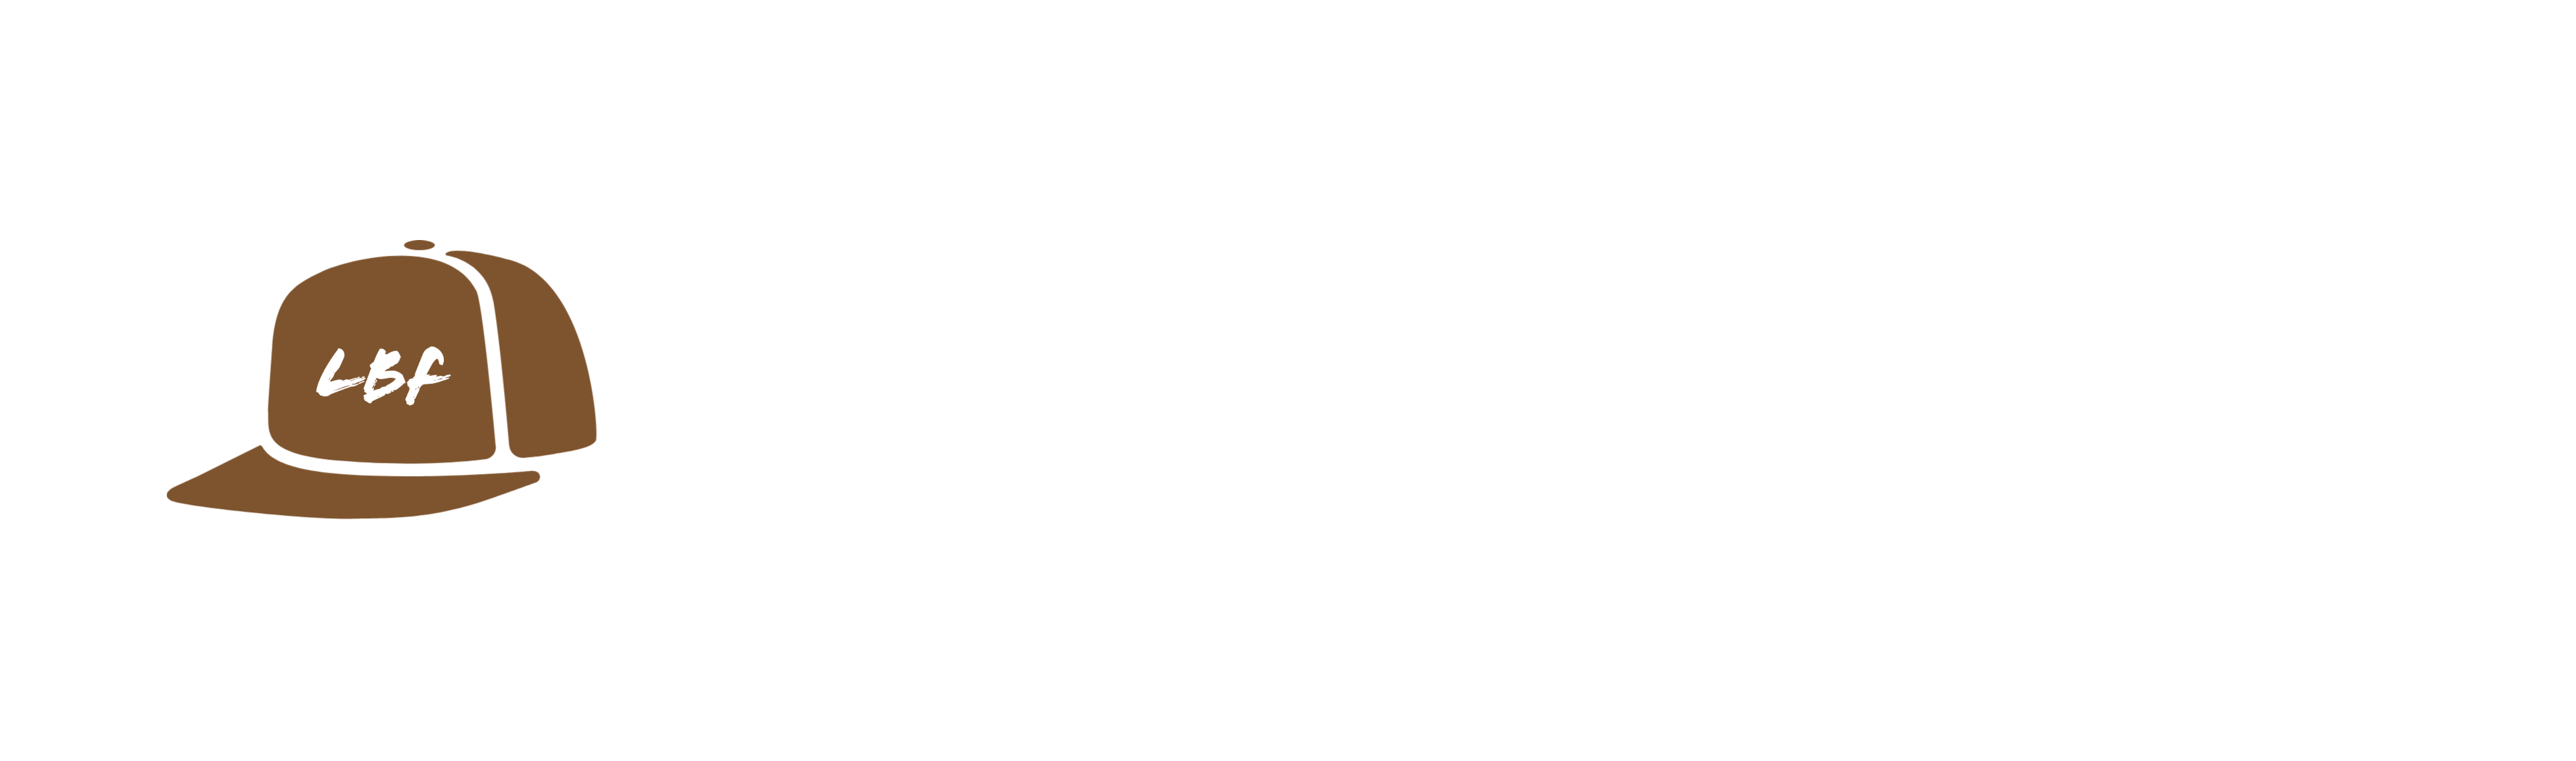 Larry Bruno Foundation